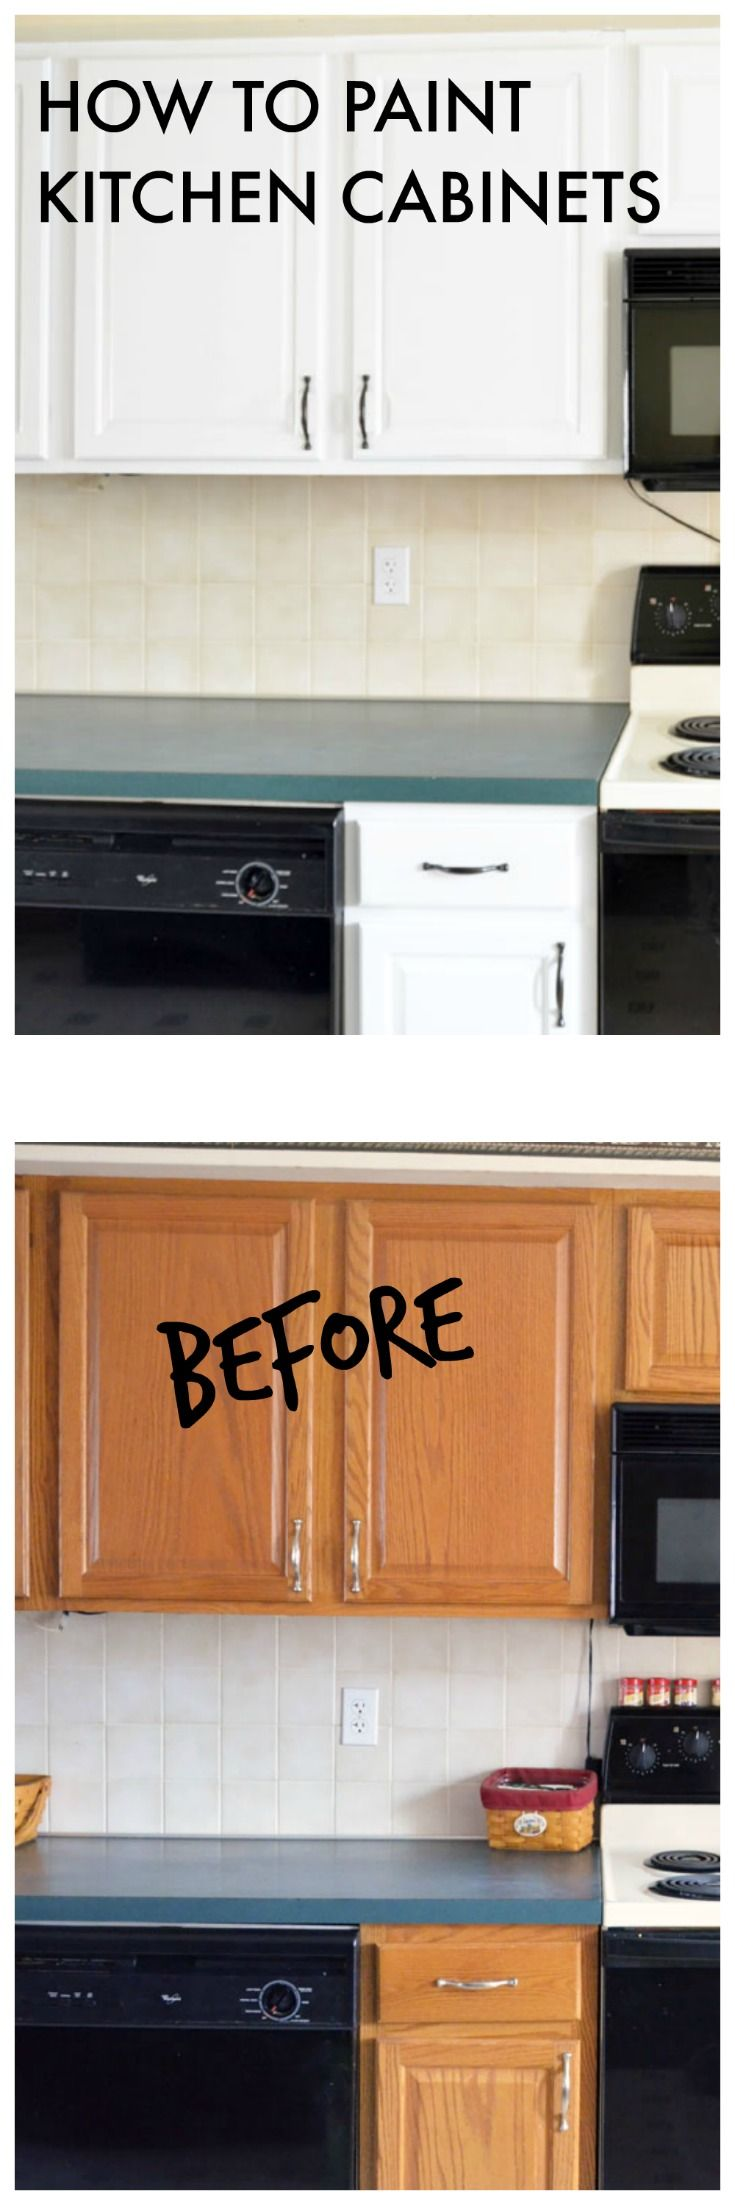 Painting Kitchen Cabinets Create And Babble Painting Kitchen Cabinets Kitchen Cabinets Kitchen Cabinet Remodel